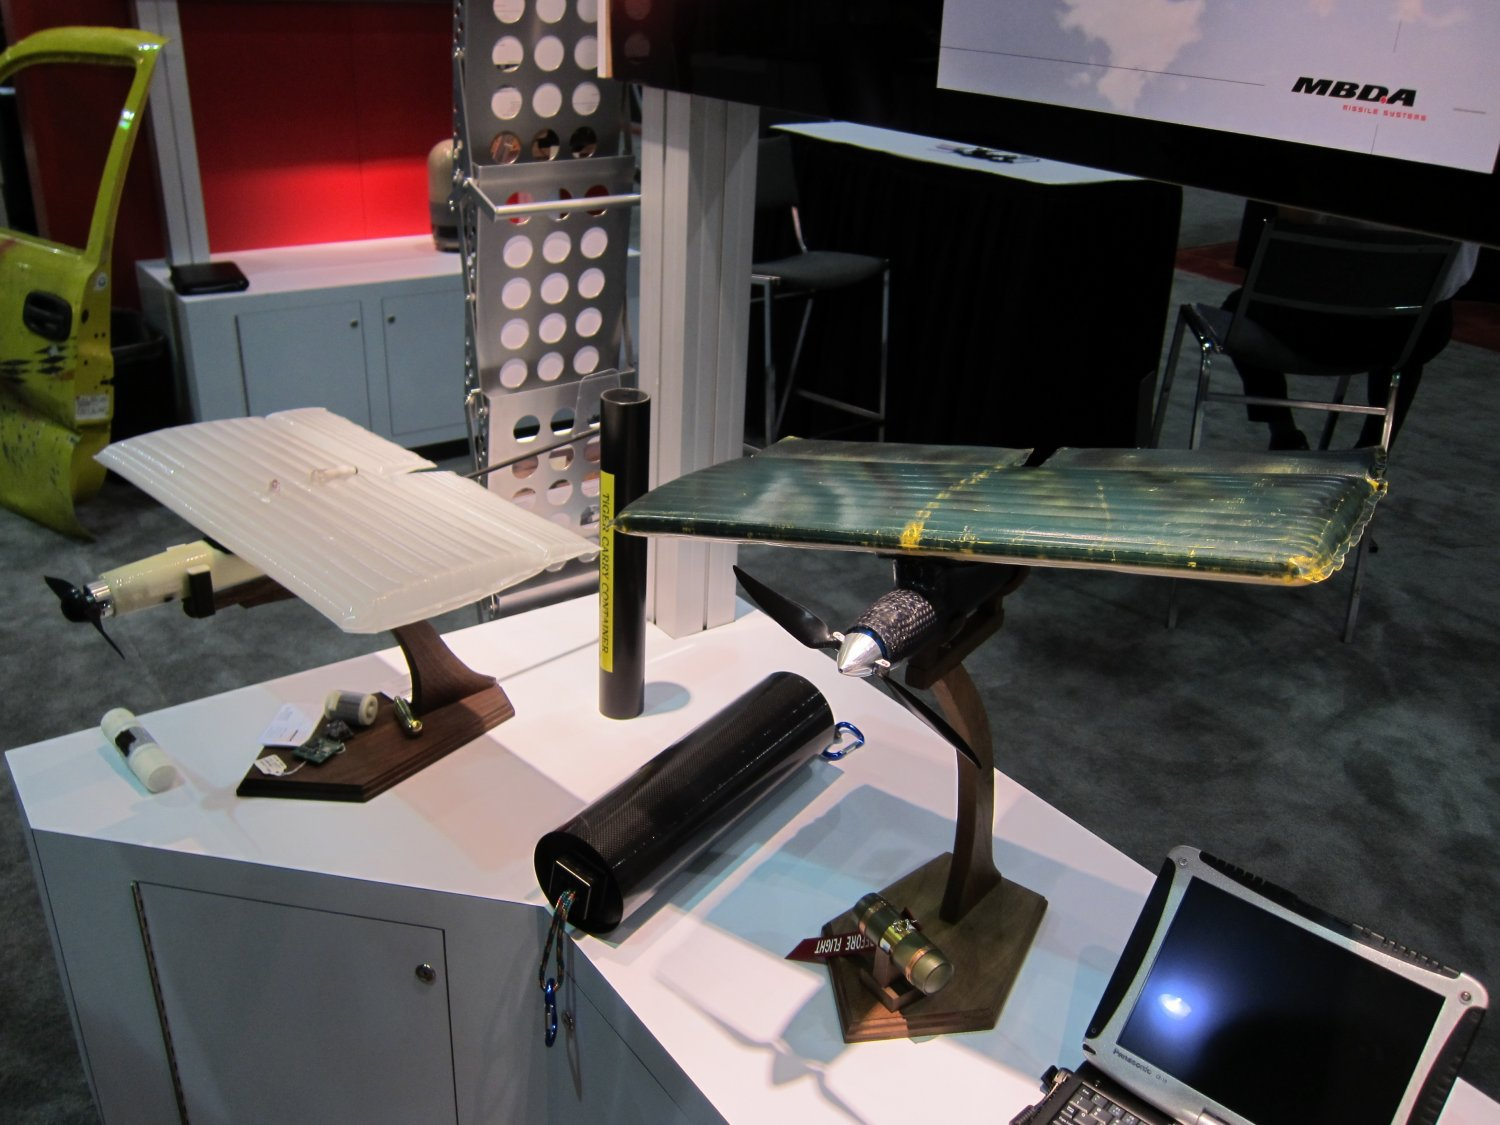 MBDA TIGER SUAV Guided Bomb SOFIC 2010 5 MBDA TiGER (Tactical Grenade Extended Range) Small UAS/UAV (SUAS/SUAV)/Mini Flying Bomb/Kamikaze Drone for Tactical Reconnaissance and Precision Kill Missions is Low Observable, Seriously Lethal: Kittys got a temper!